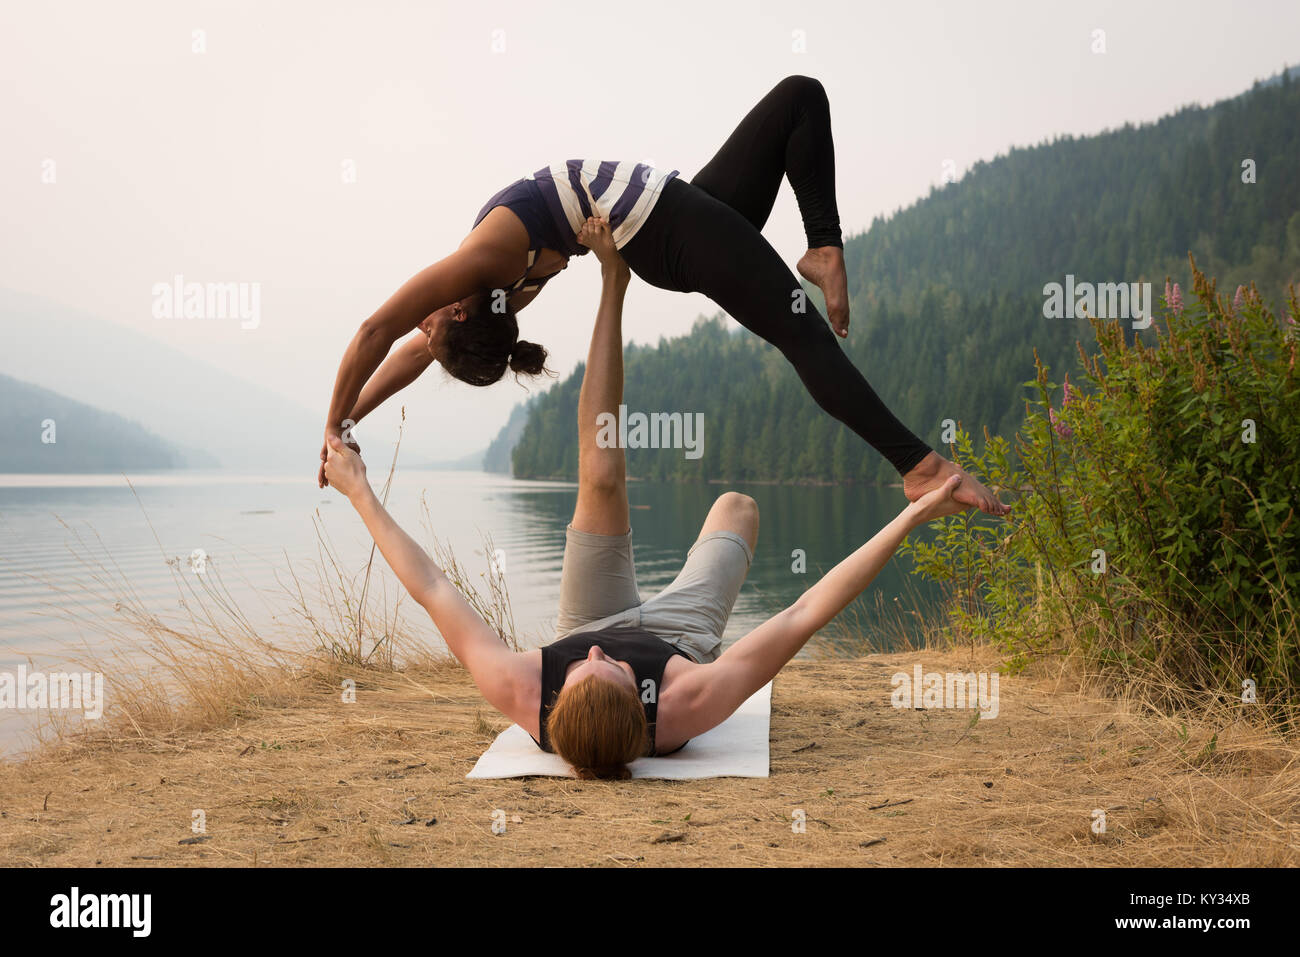 Fit couple practicing acro yoga in a lush green ground - Stock Image